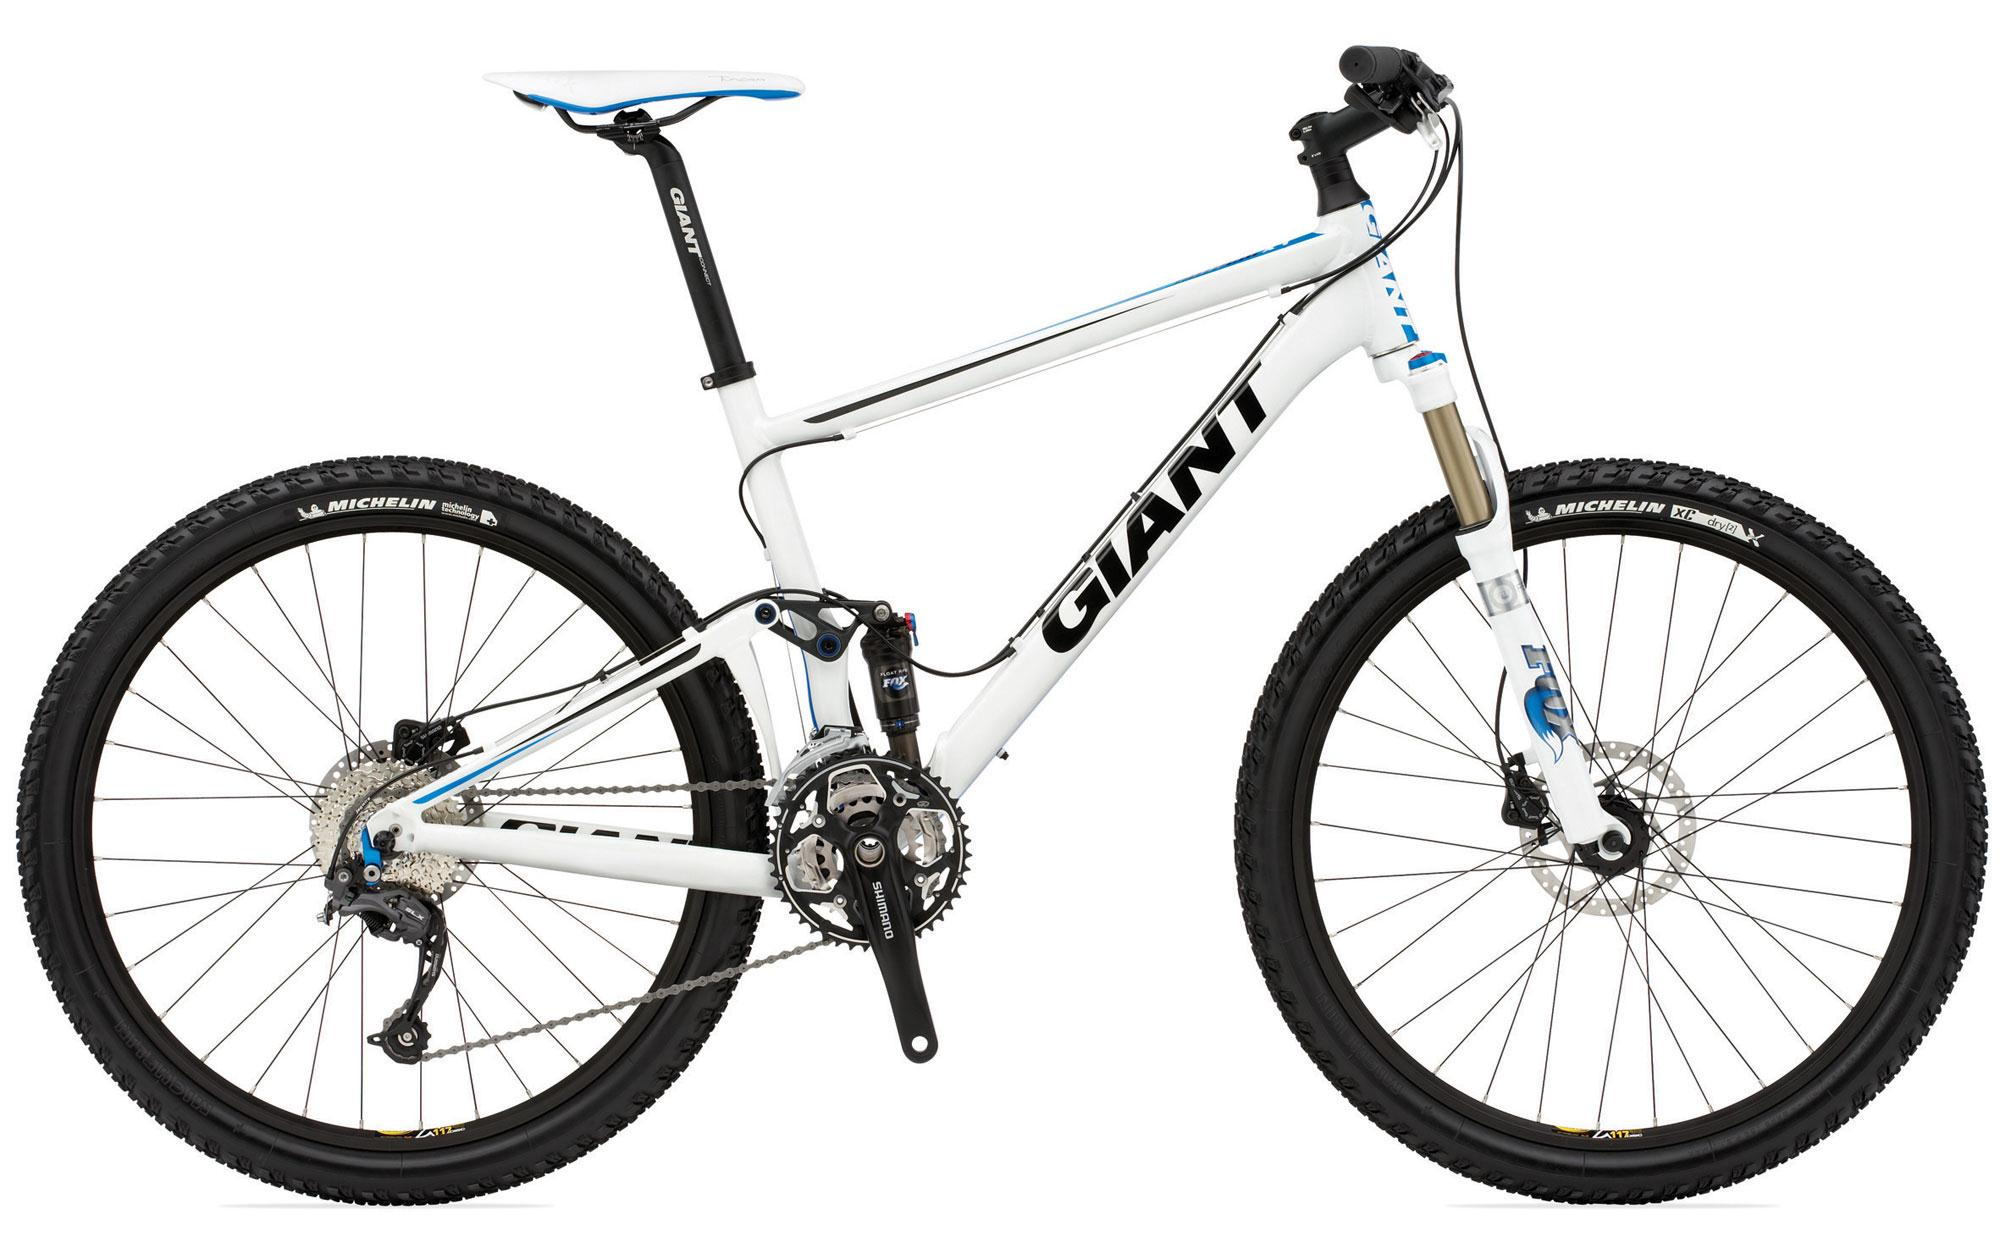 http://www.giant-bicycles.com/_generated/_generated_uk/bikes/models/images/2000/2010/Anthem_X_4_white_GE_GA.jpg